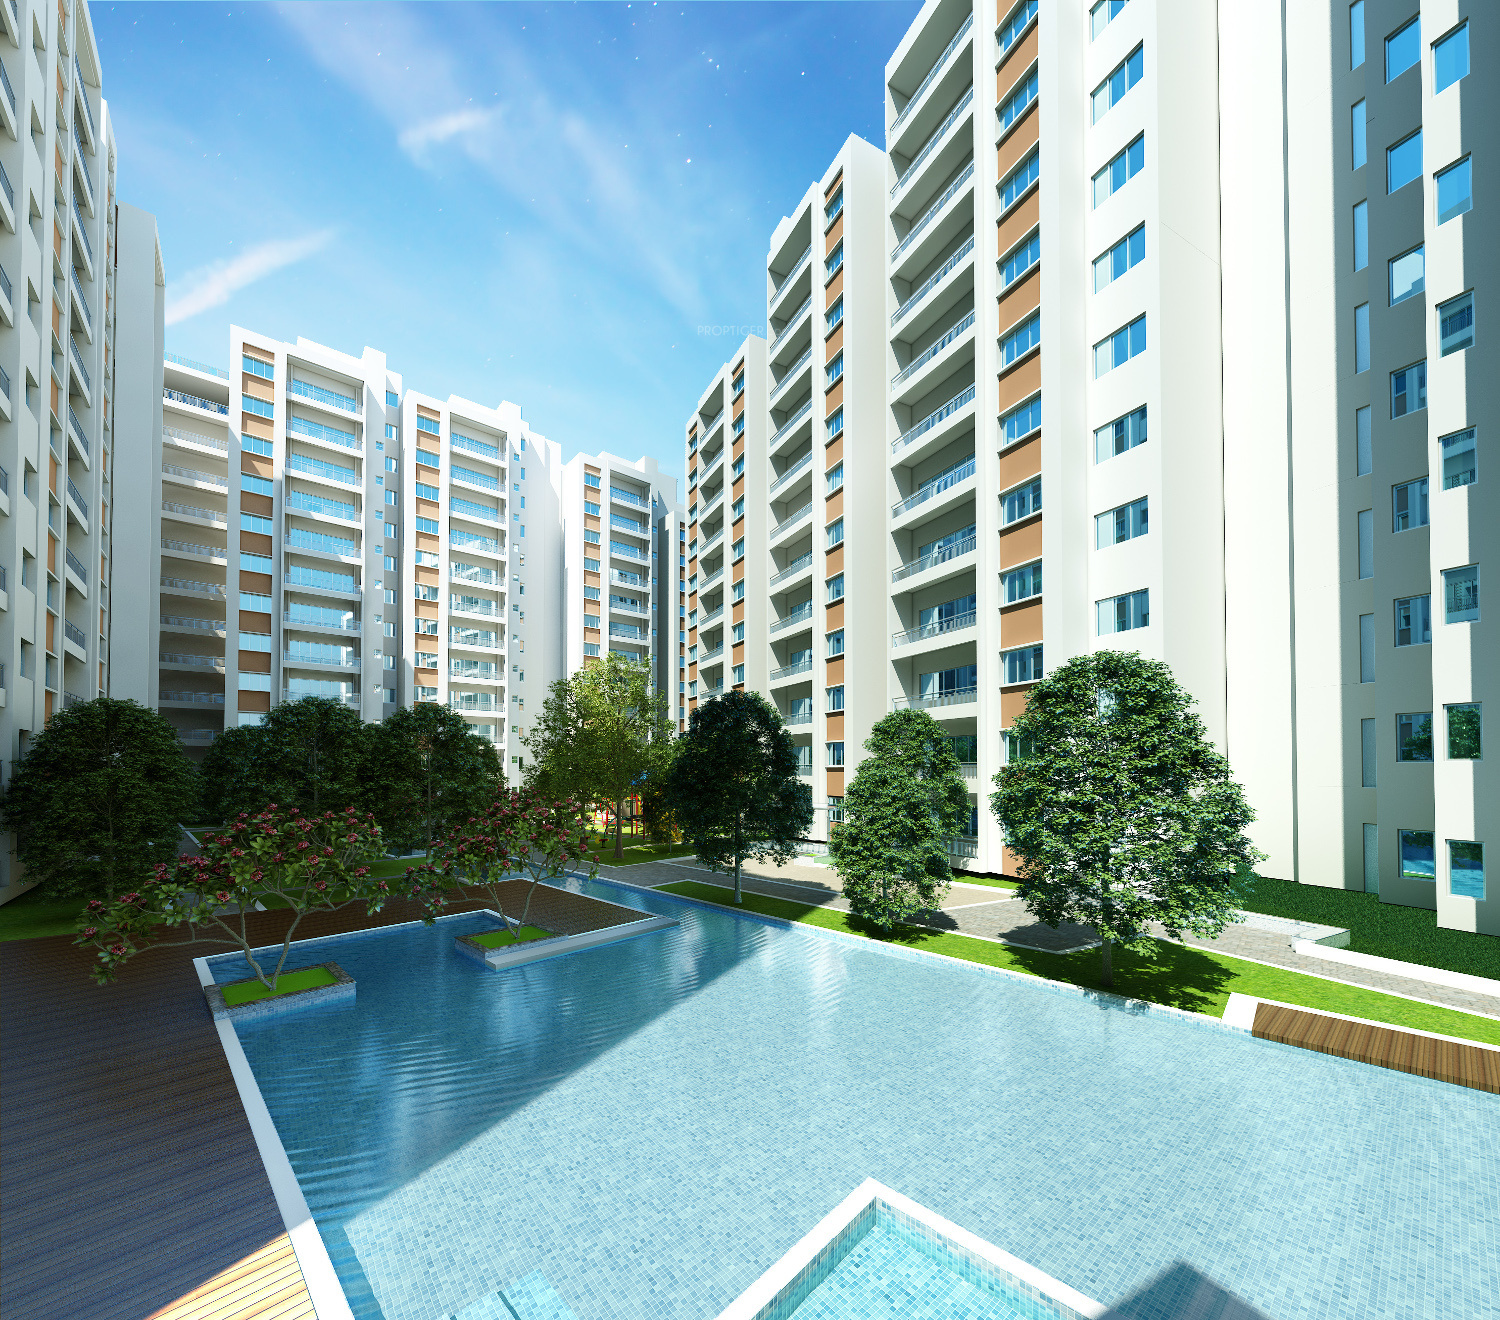 1170 Sq Ft 2 BHK 2T Apartment For Sale In SLV